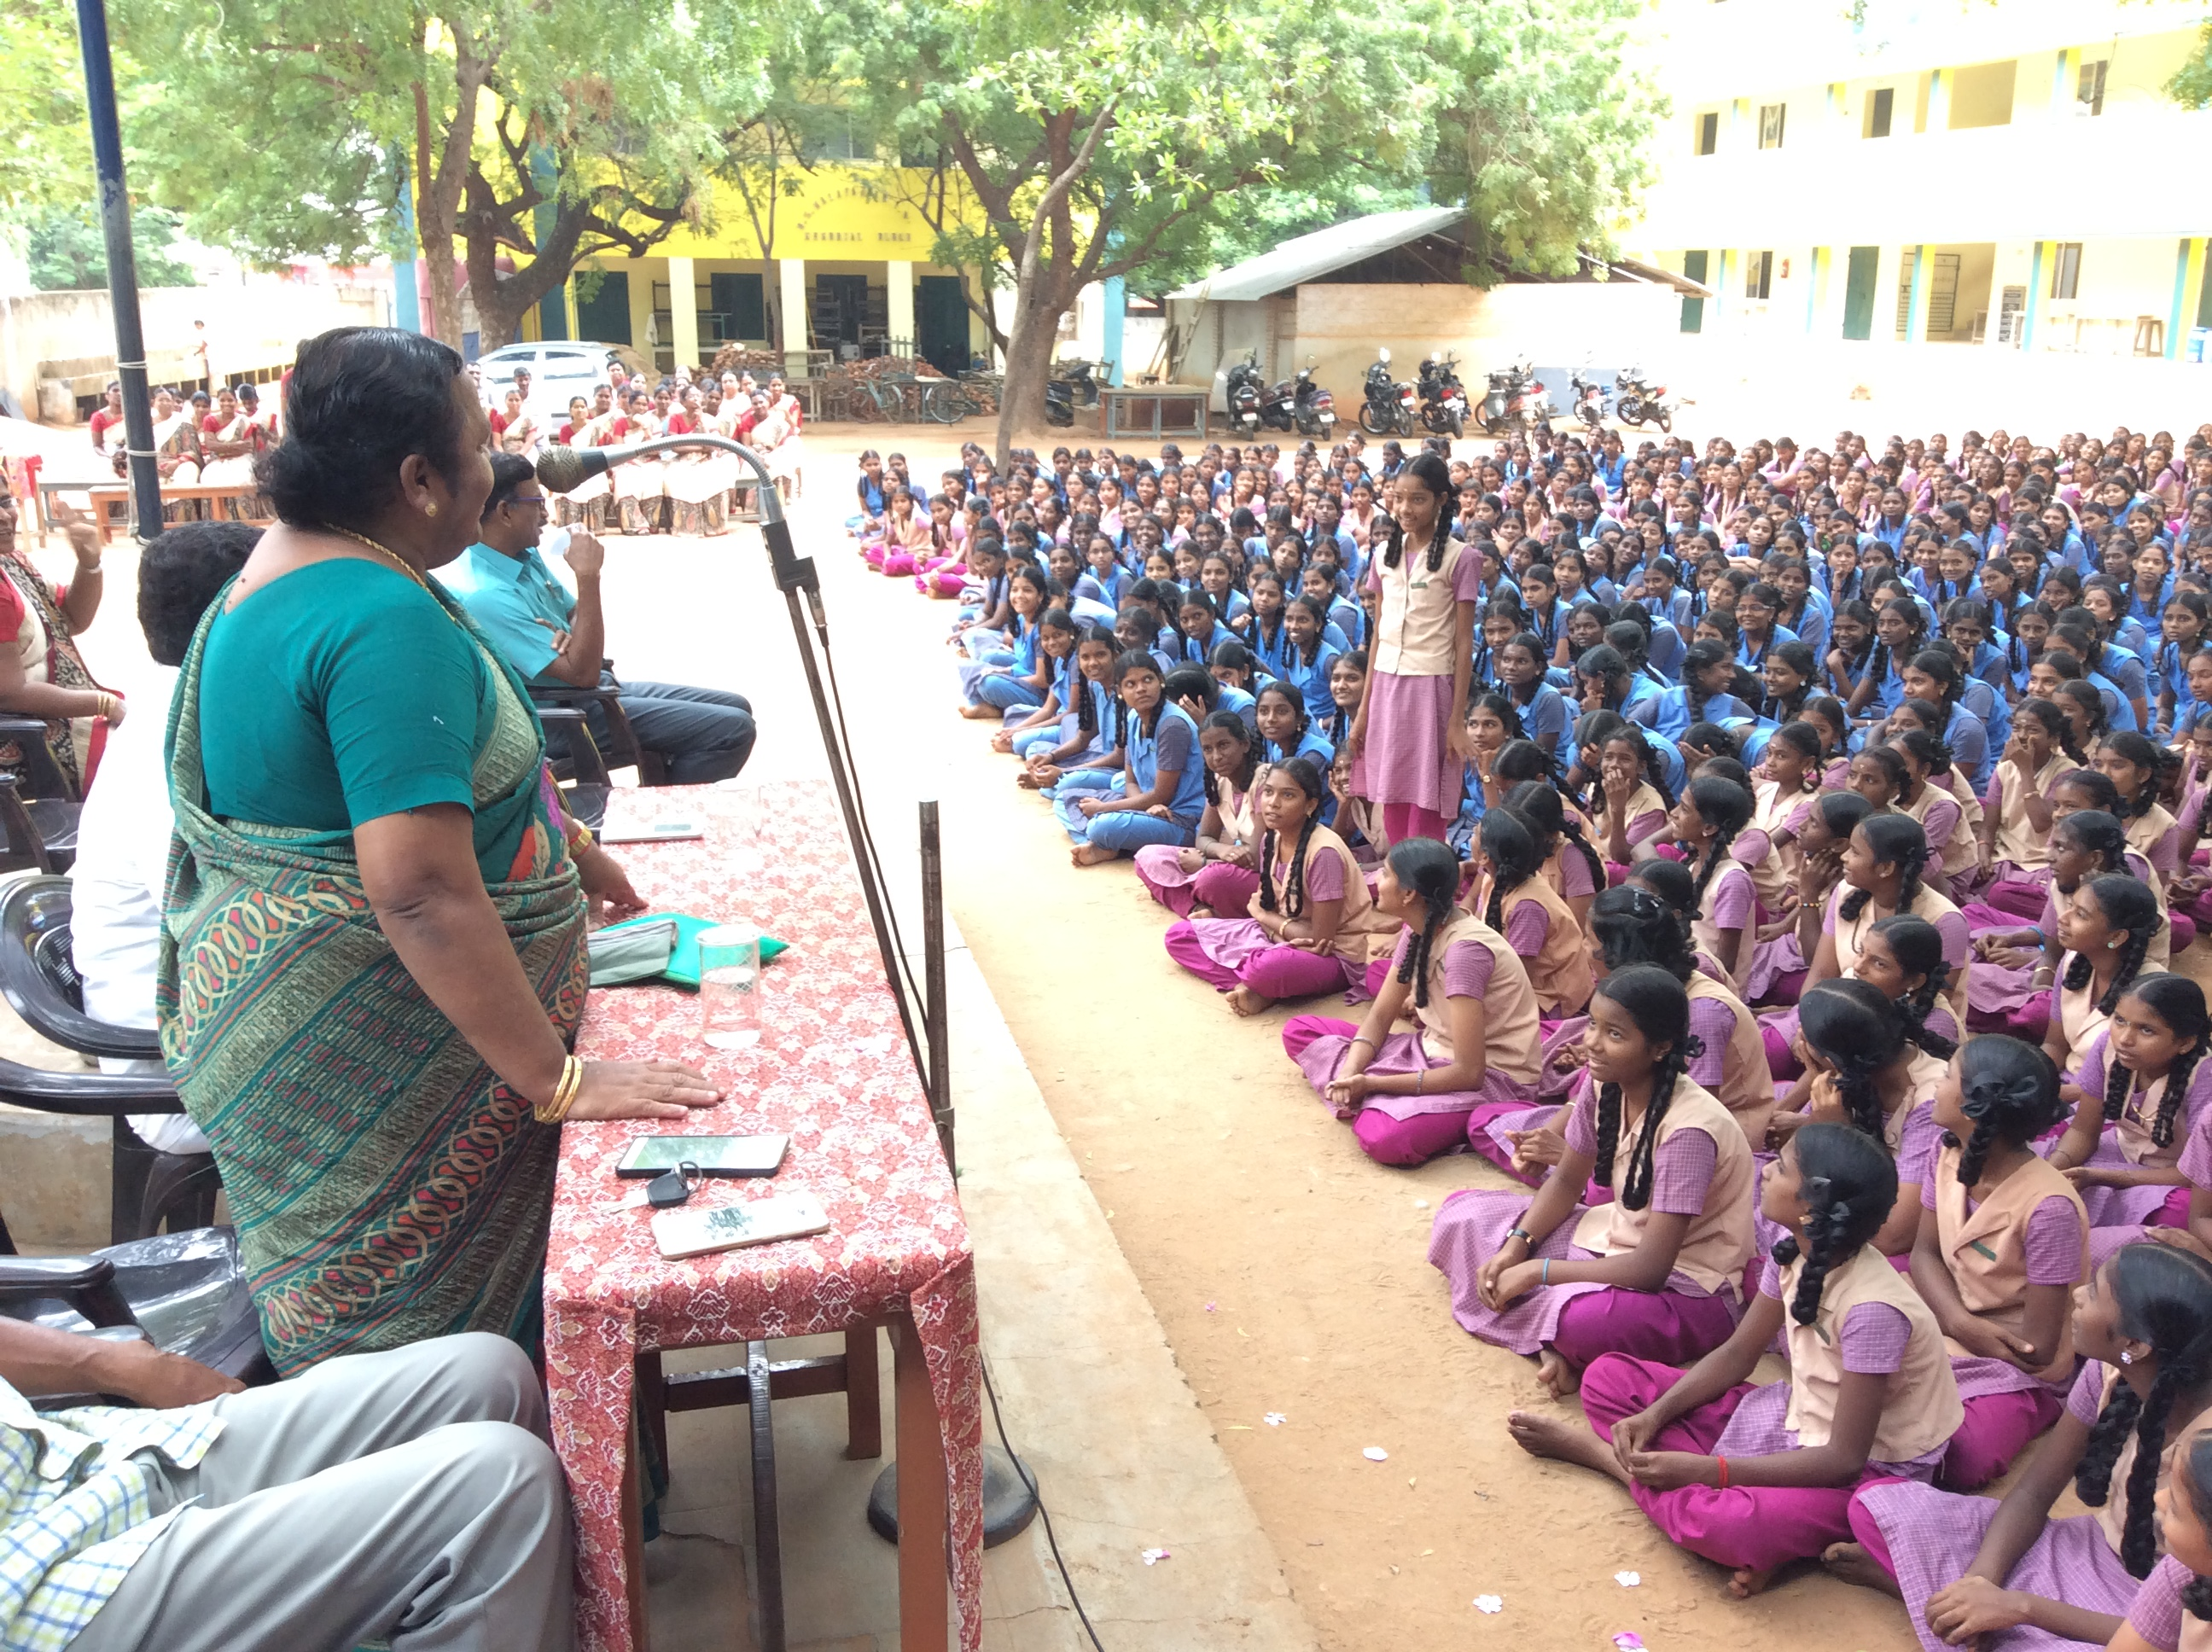 Tmt.Tamilarasi, HR Specialist conducting workshop